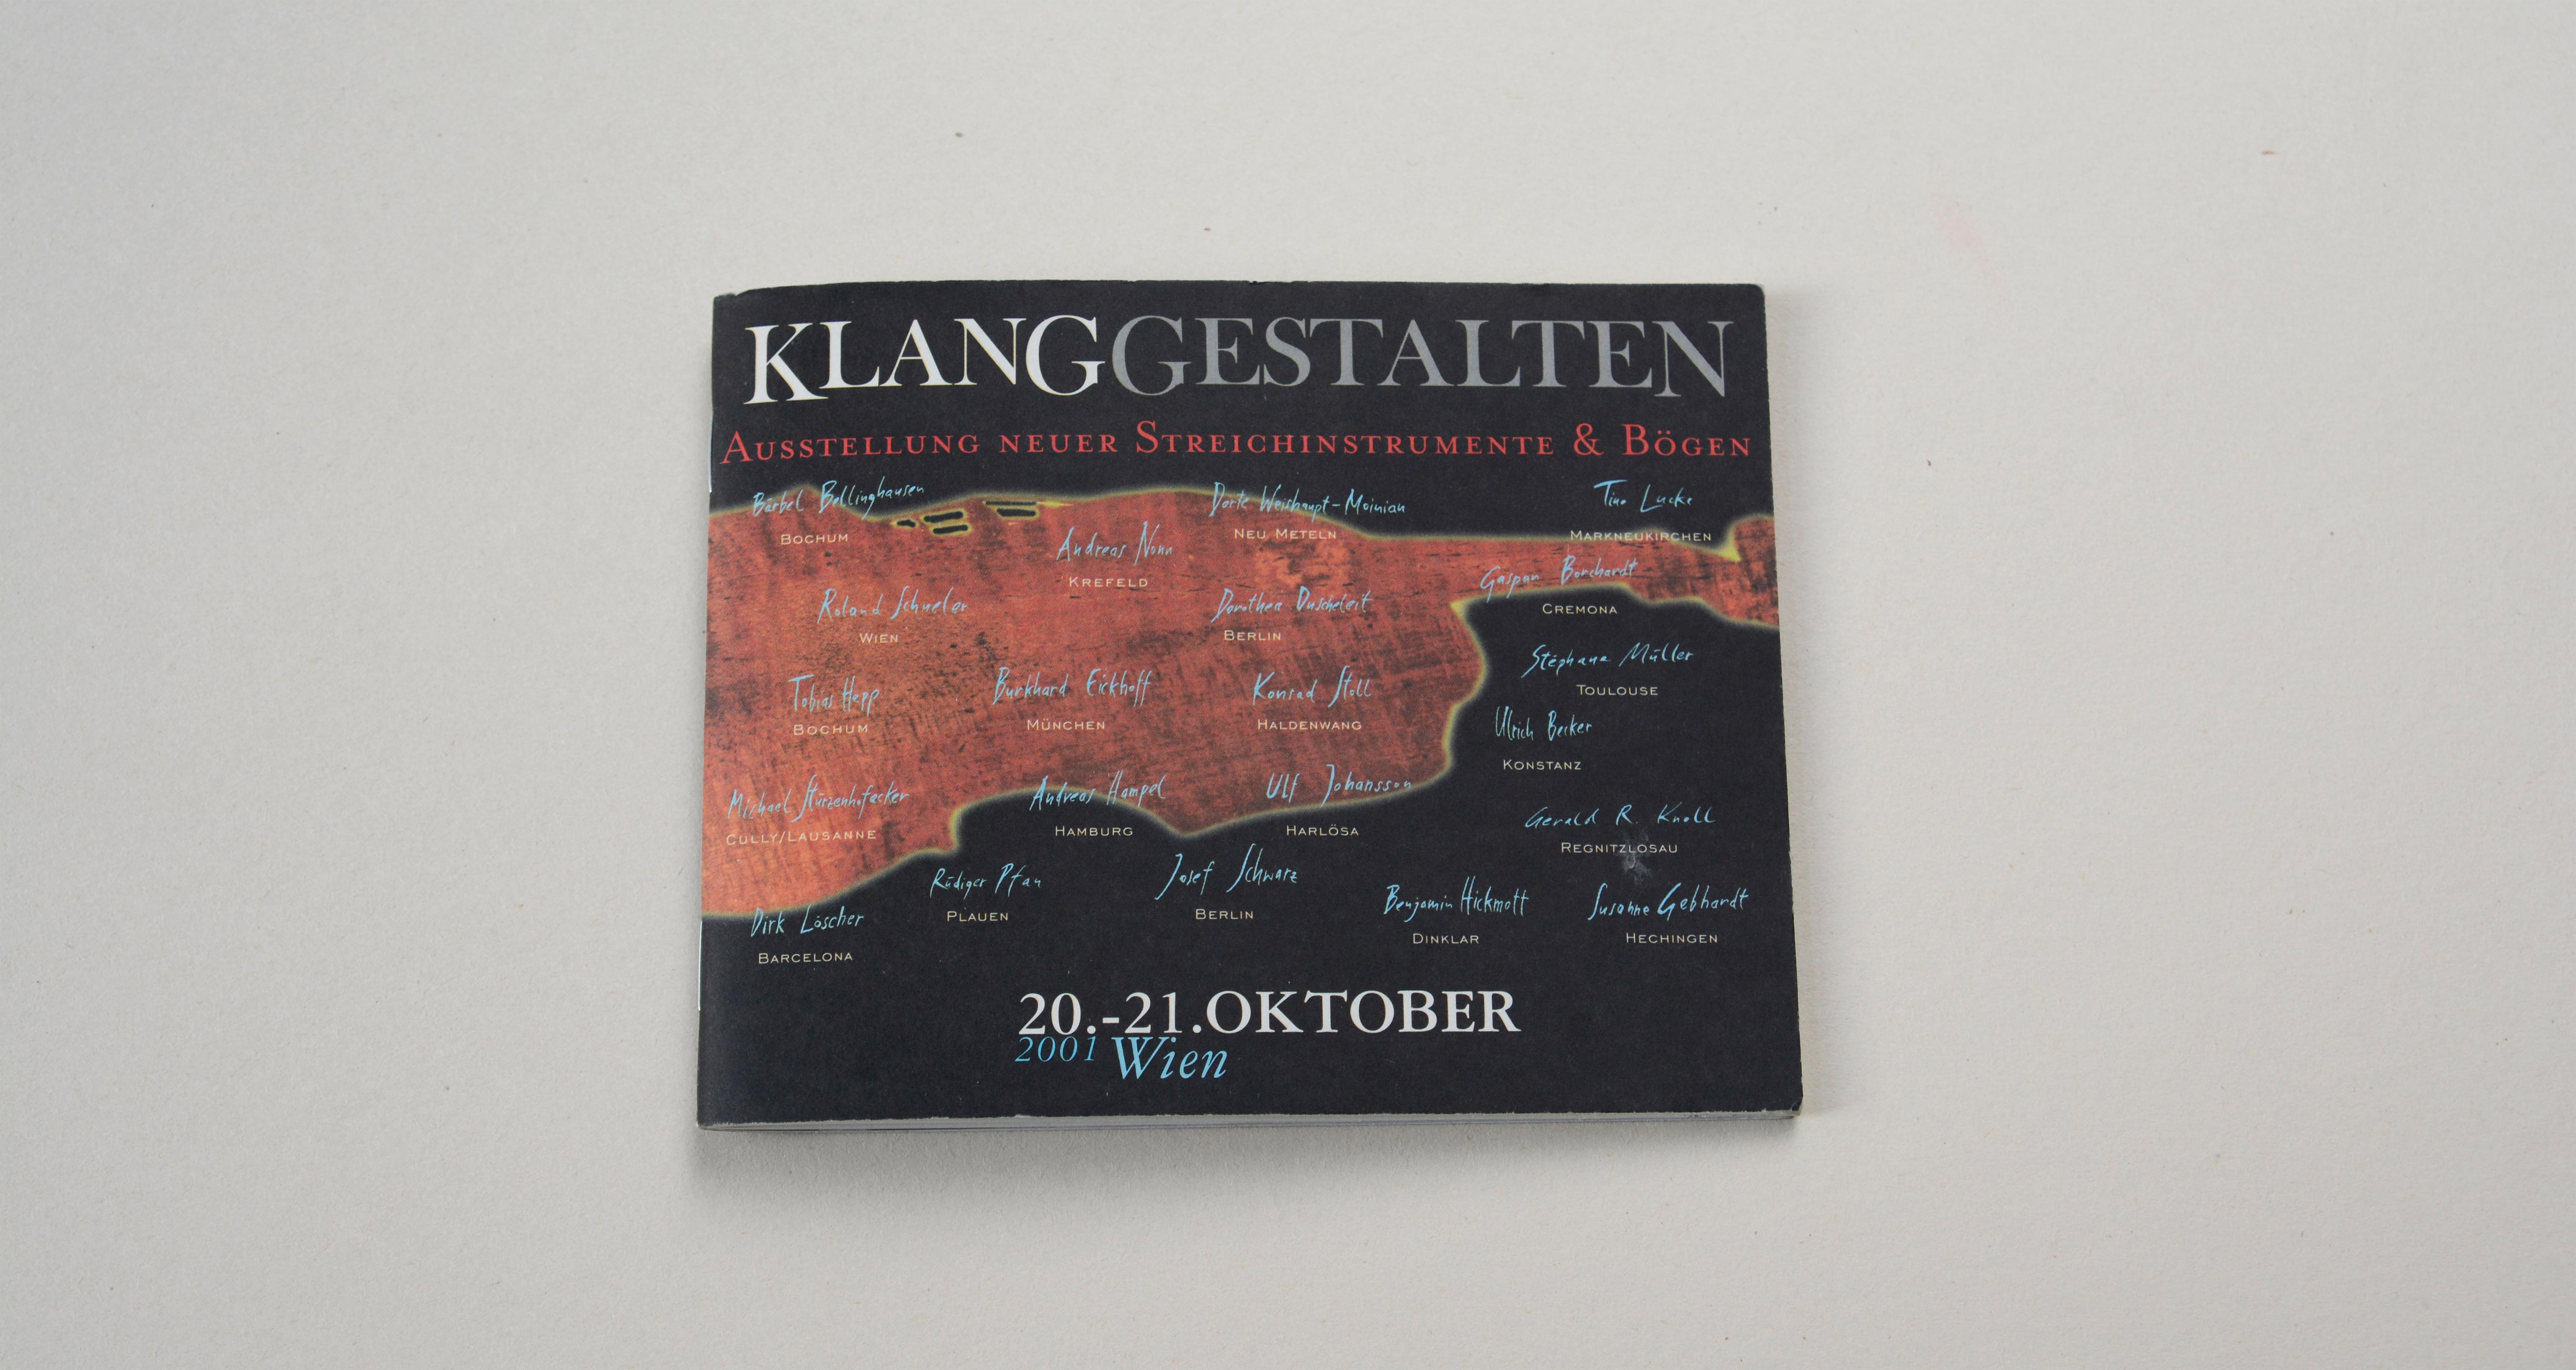 Cover catalogue landscape format. Black background. Large silhouette of violin in the middle. Large logo/title above. Line of text underneath. Several signatures overlayed on entire cover.